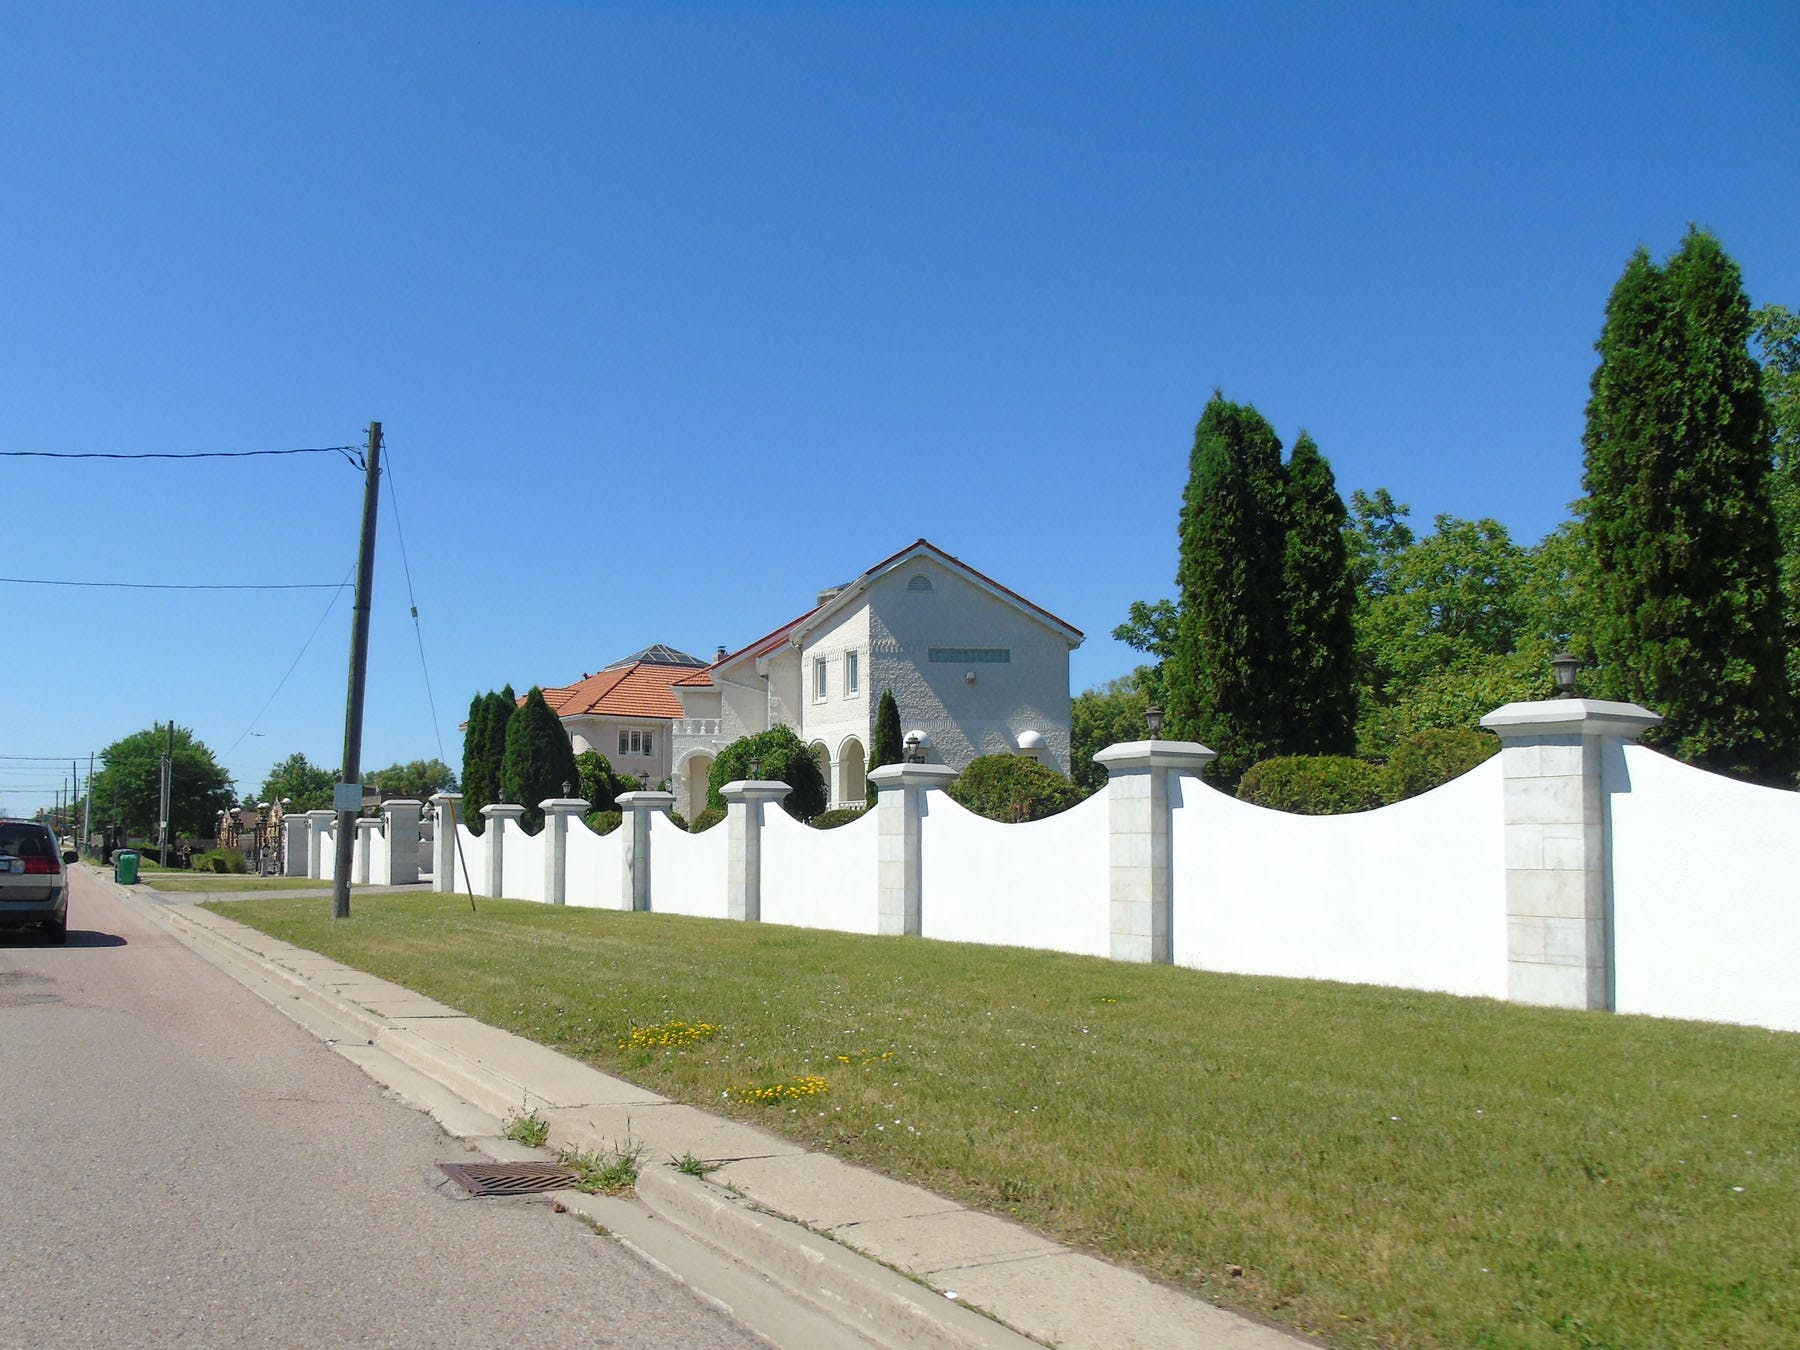 Property fencing and building setback from the roadway along Mississauga Road